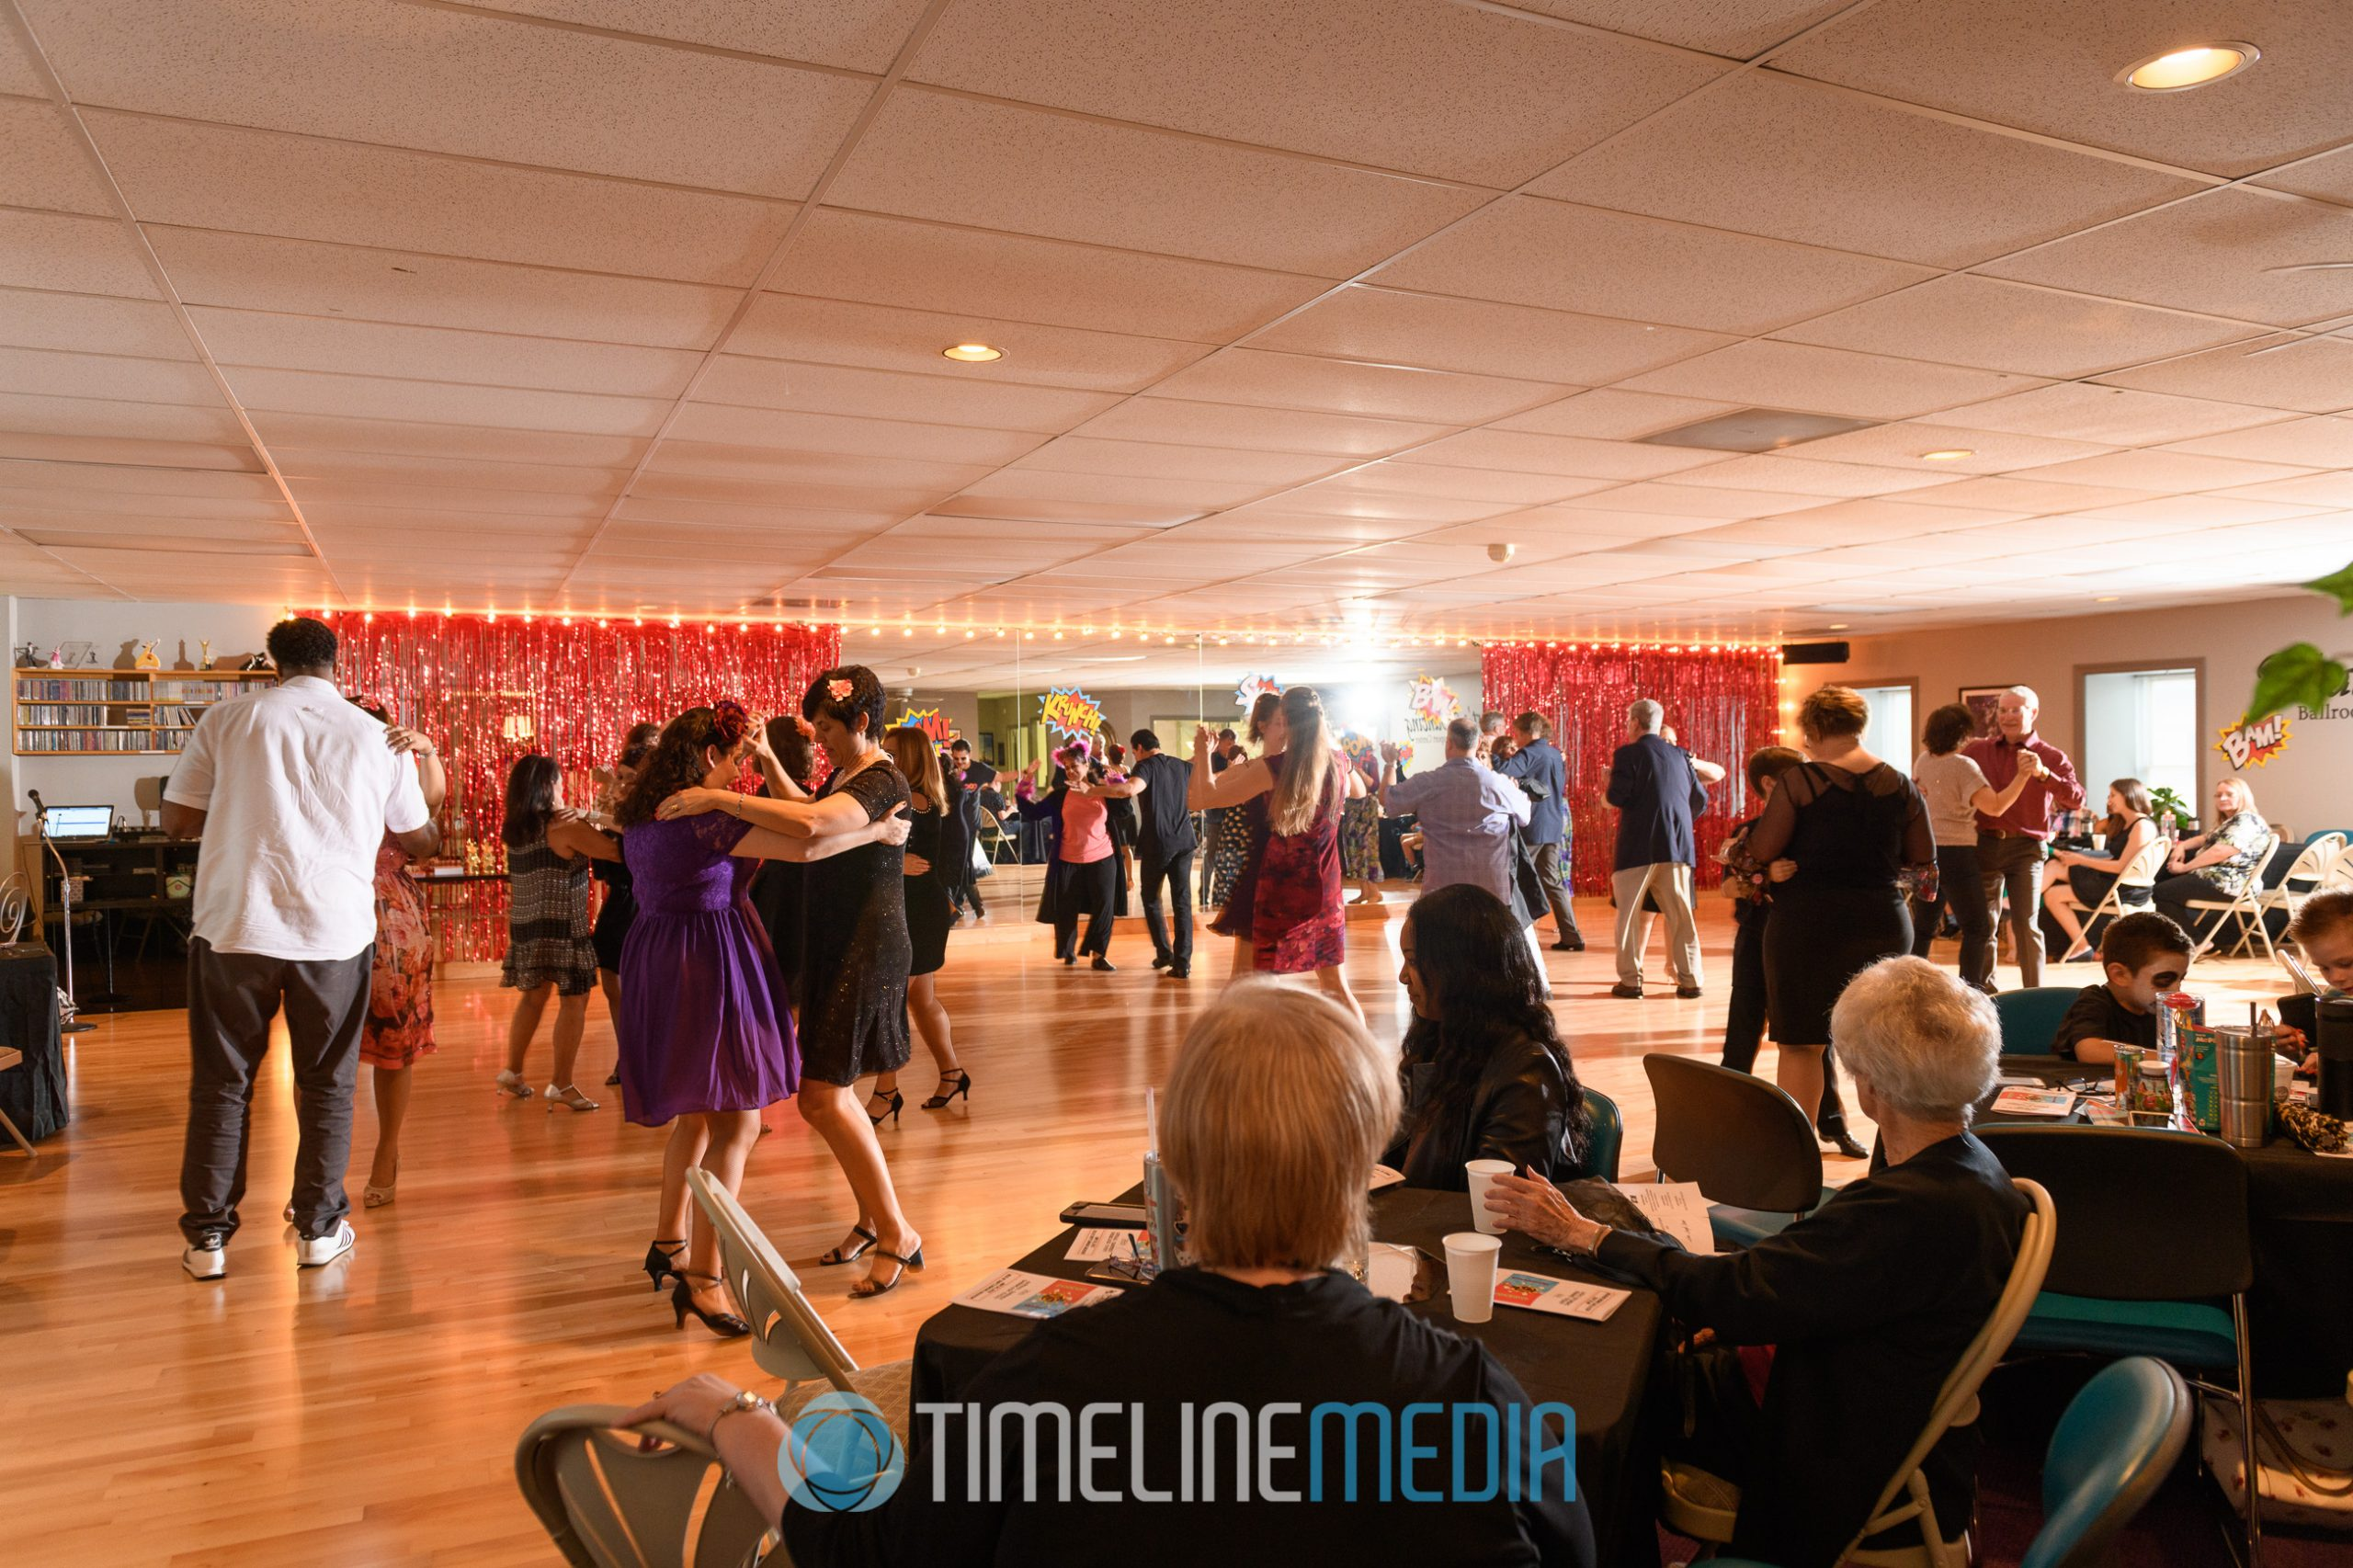 Social Dancing at That's Dancing studio in Jessup, MD ©TimeLine Media